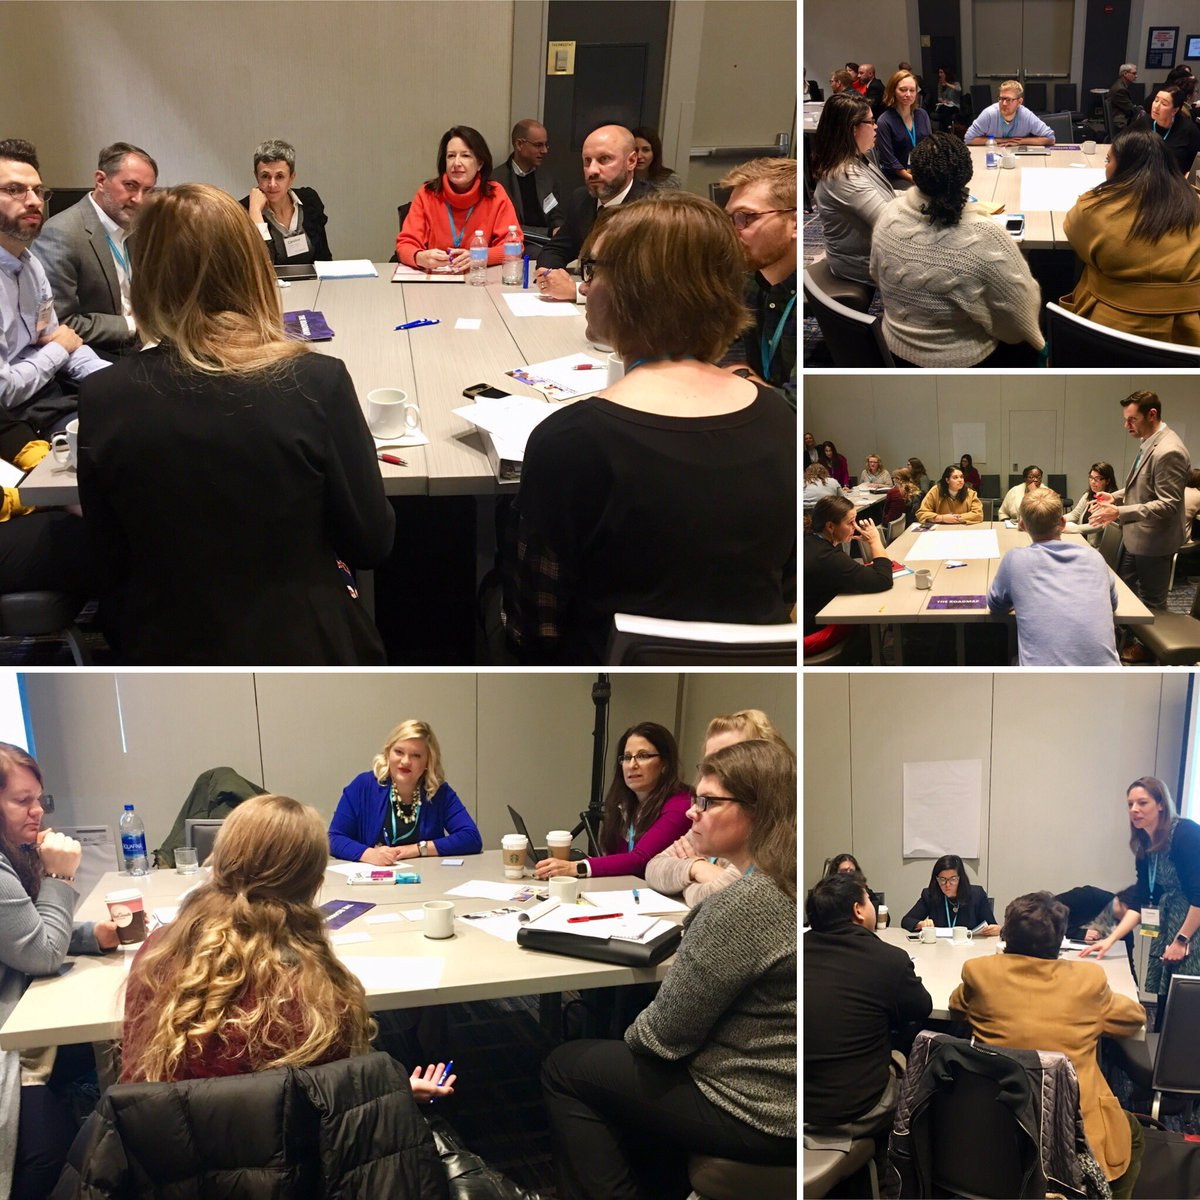 Getting down to business on #SDoH & #ComplexCare: Teams from across the country setting tangible goals & outlining actionable steps for change. #CenteringCare18 <br>http://pic.twitter.com/mvVlhBbm5K